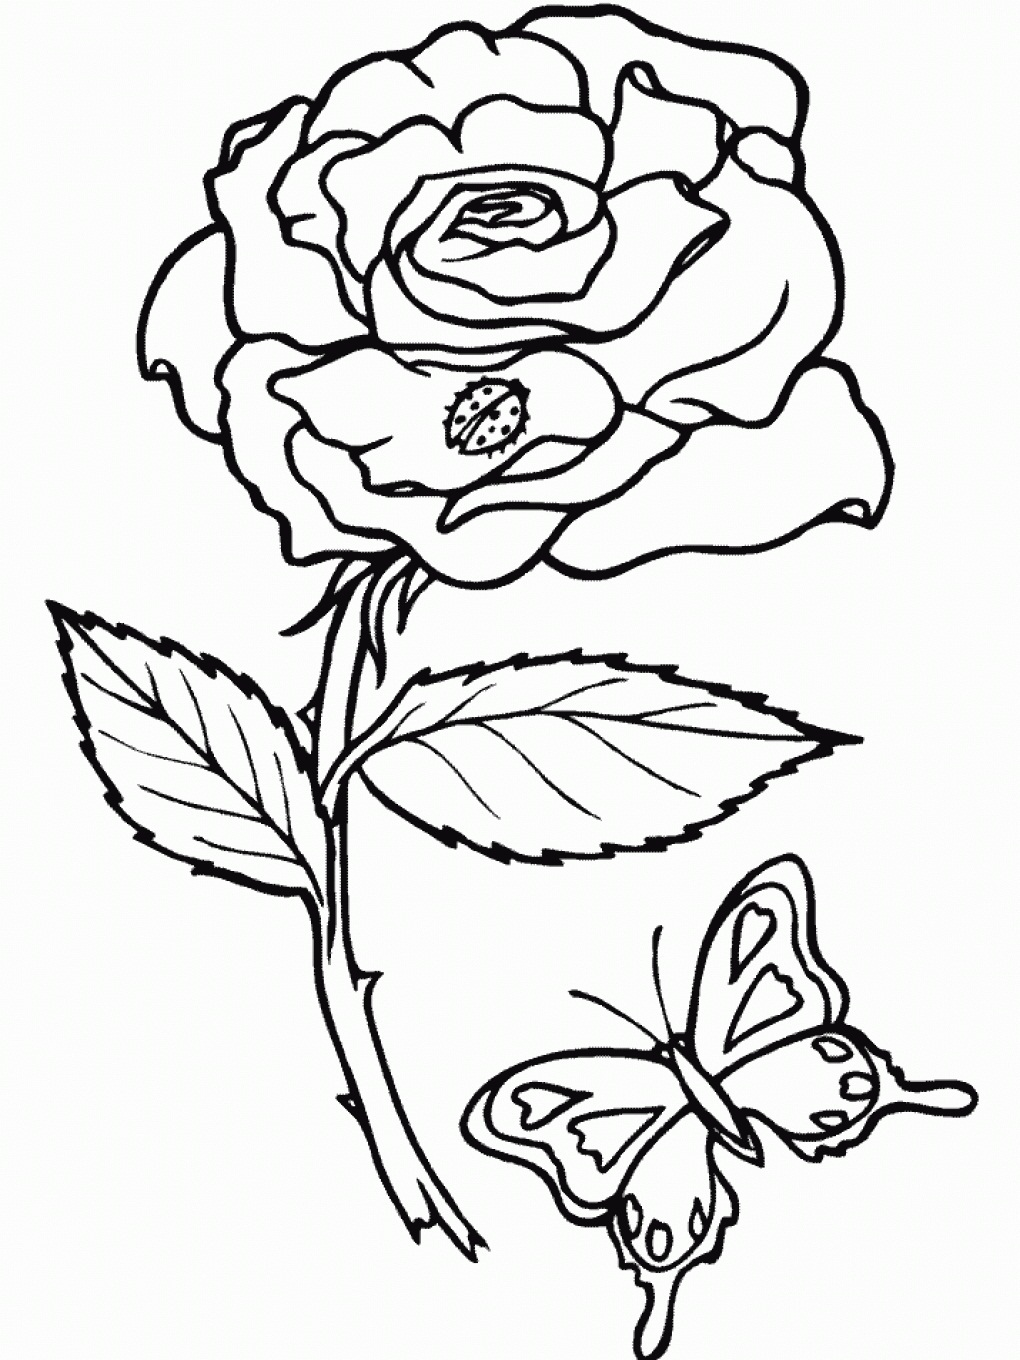 1020x1360 Majestic Design Ideas Rose Coloring Pages For Adults Easy Images